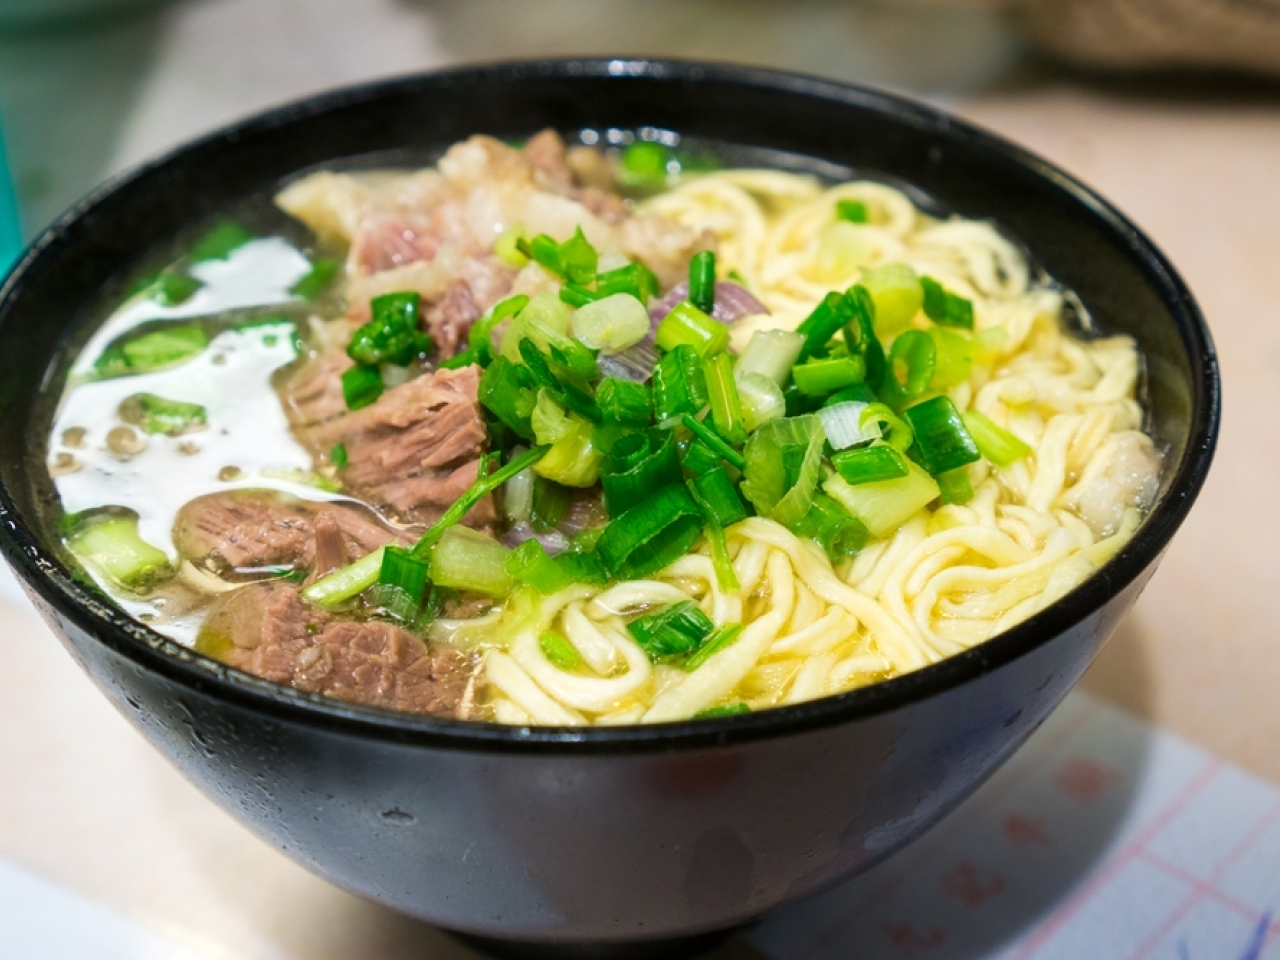 Simon Wong of the Federation of Restaurants, says cha chaan teng will have to pay more for beef. File image: Shutterstock